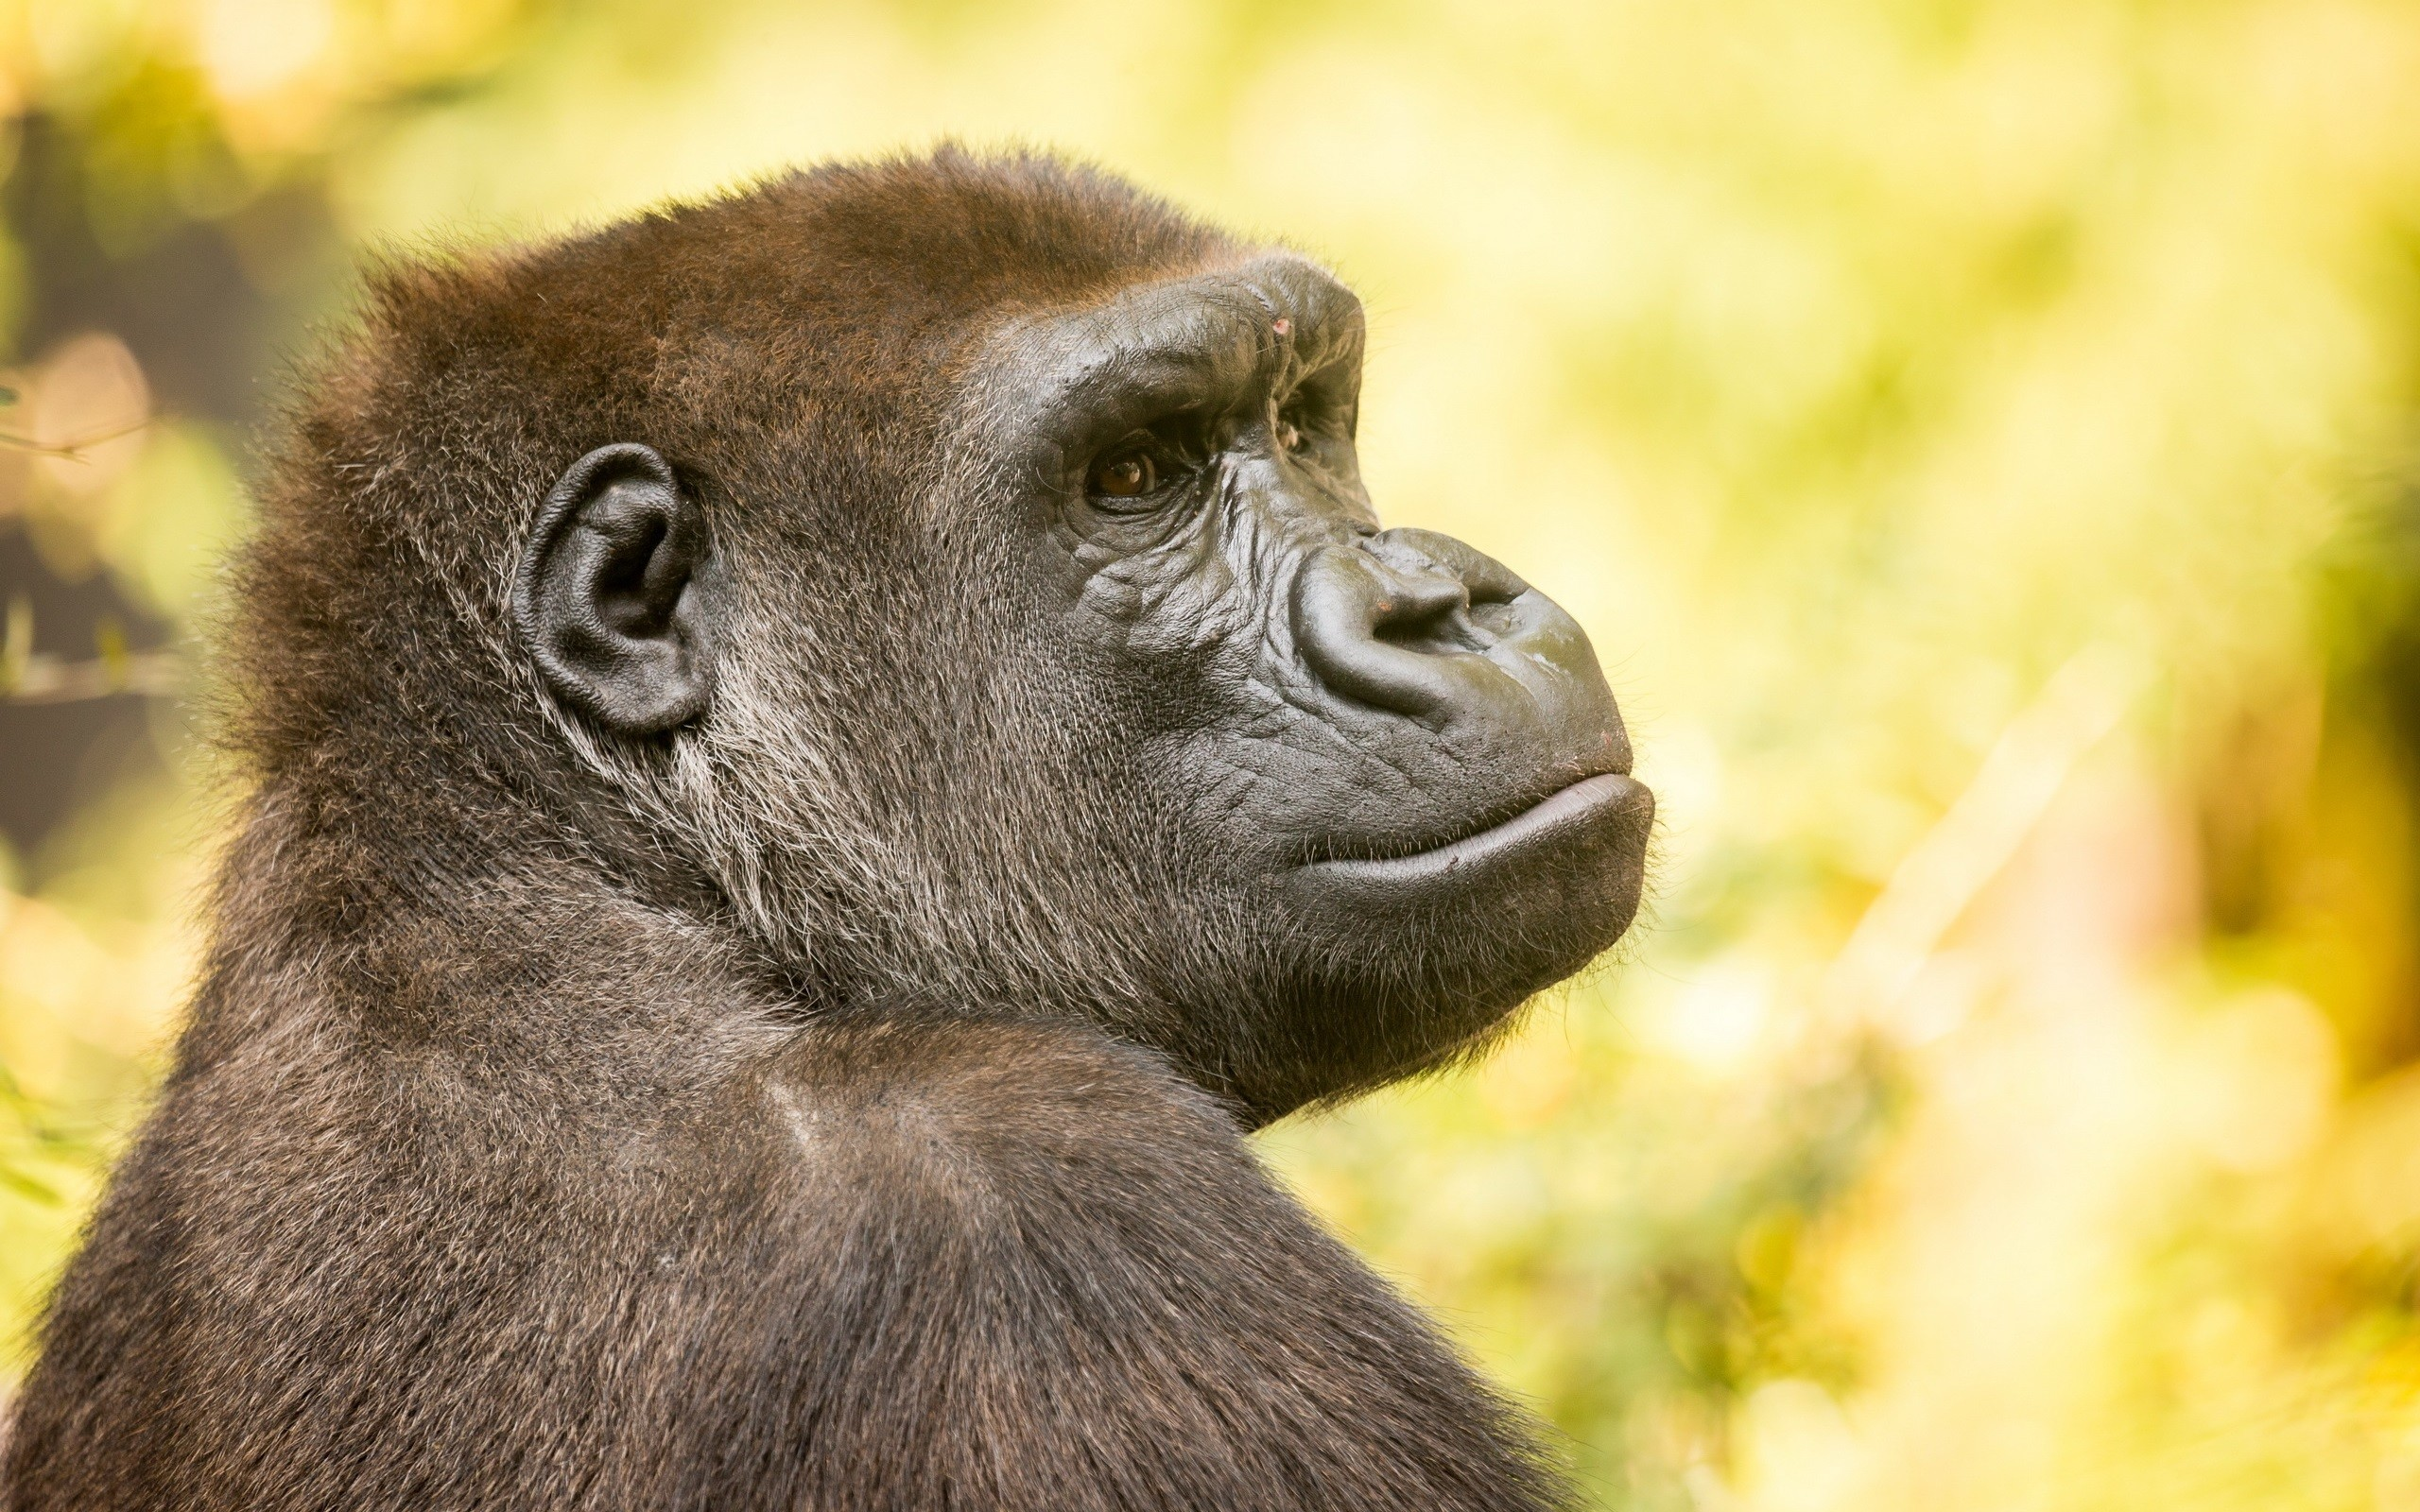 best gorilla wallpapers, gorilla gorilla gorilla